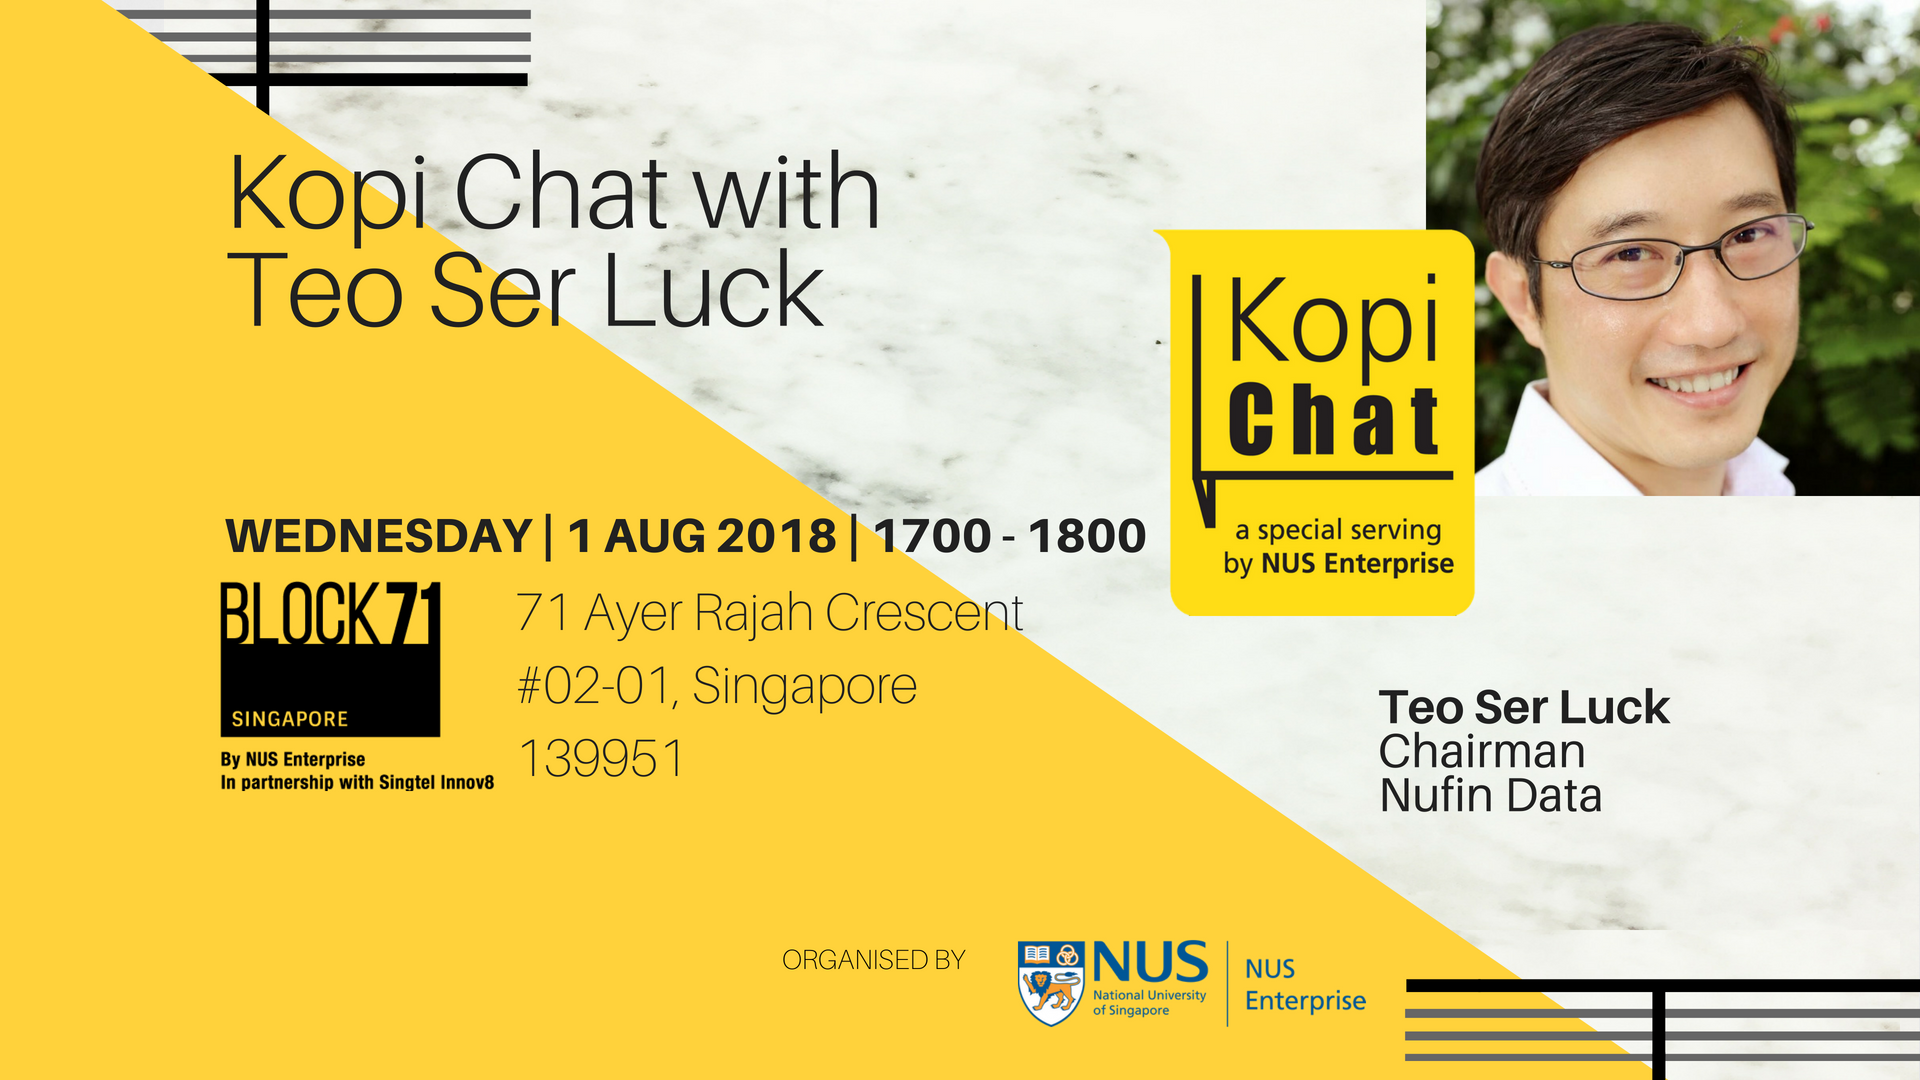 Kopi Chat with Teo Ser Luck